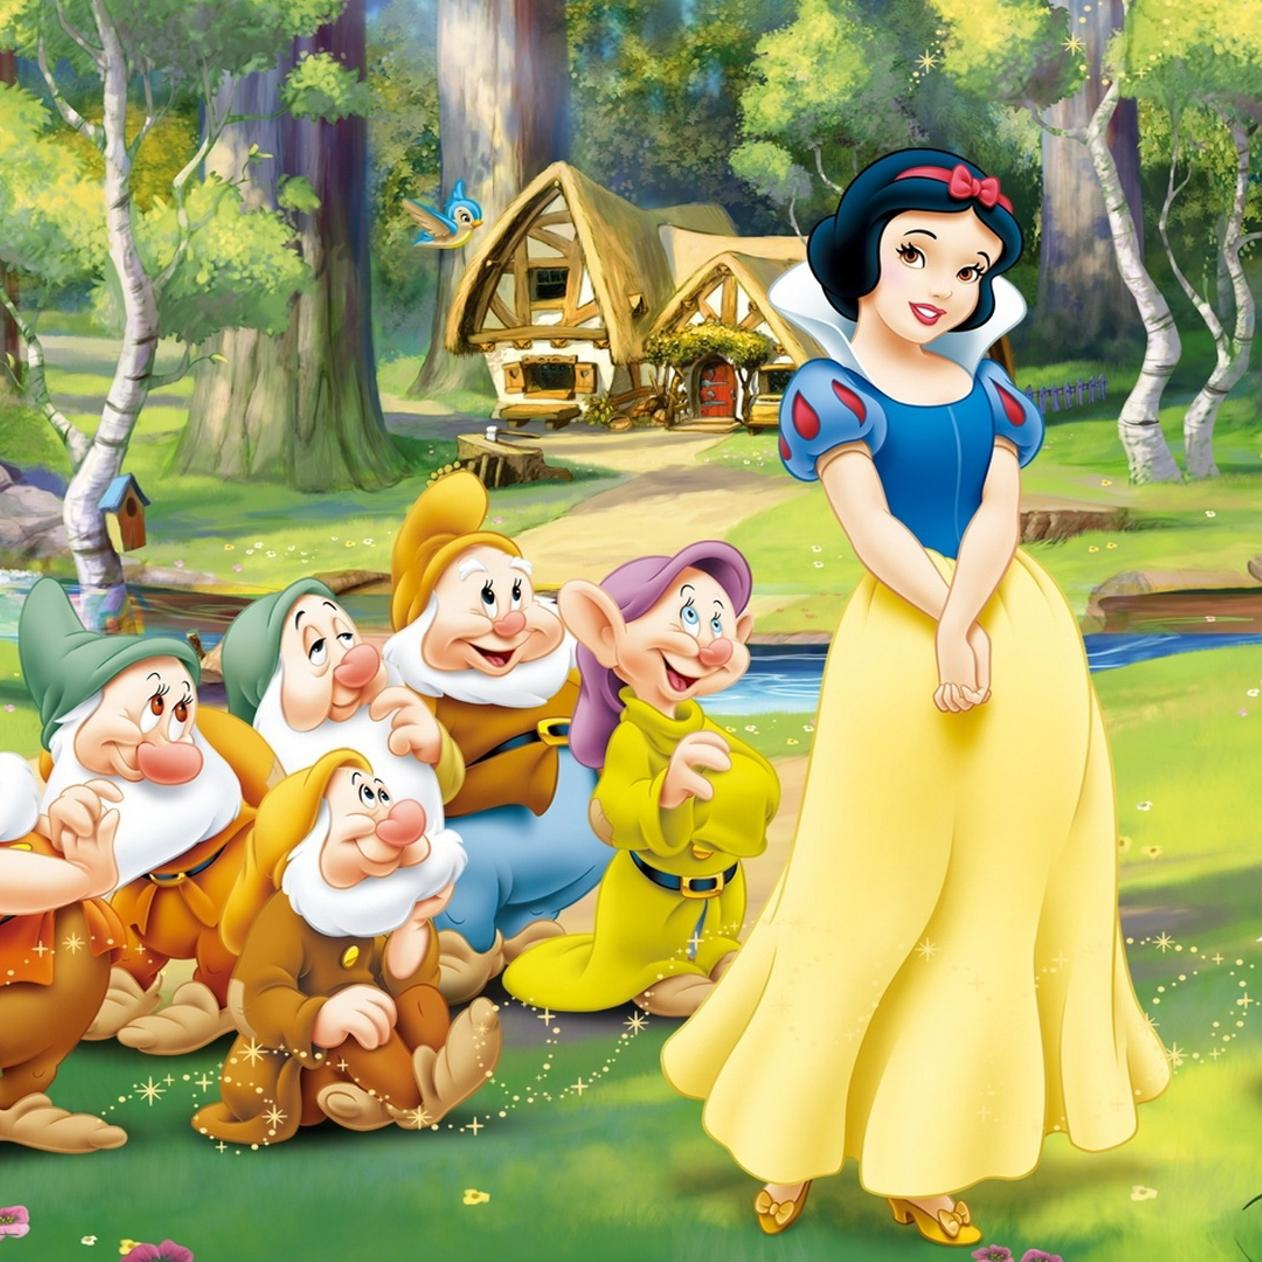 Snow white and the seven dwarfs 3d  fucked scenes